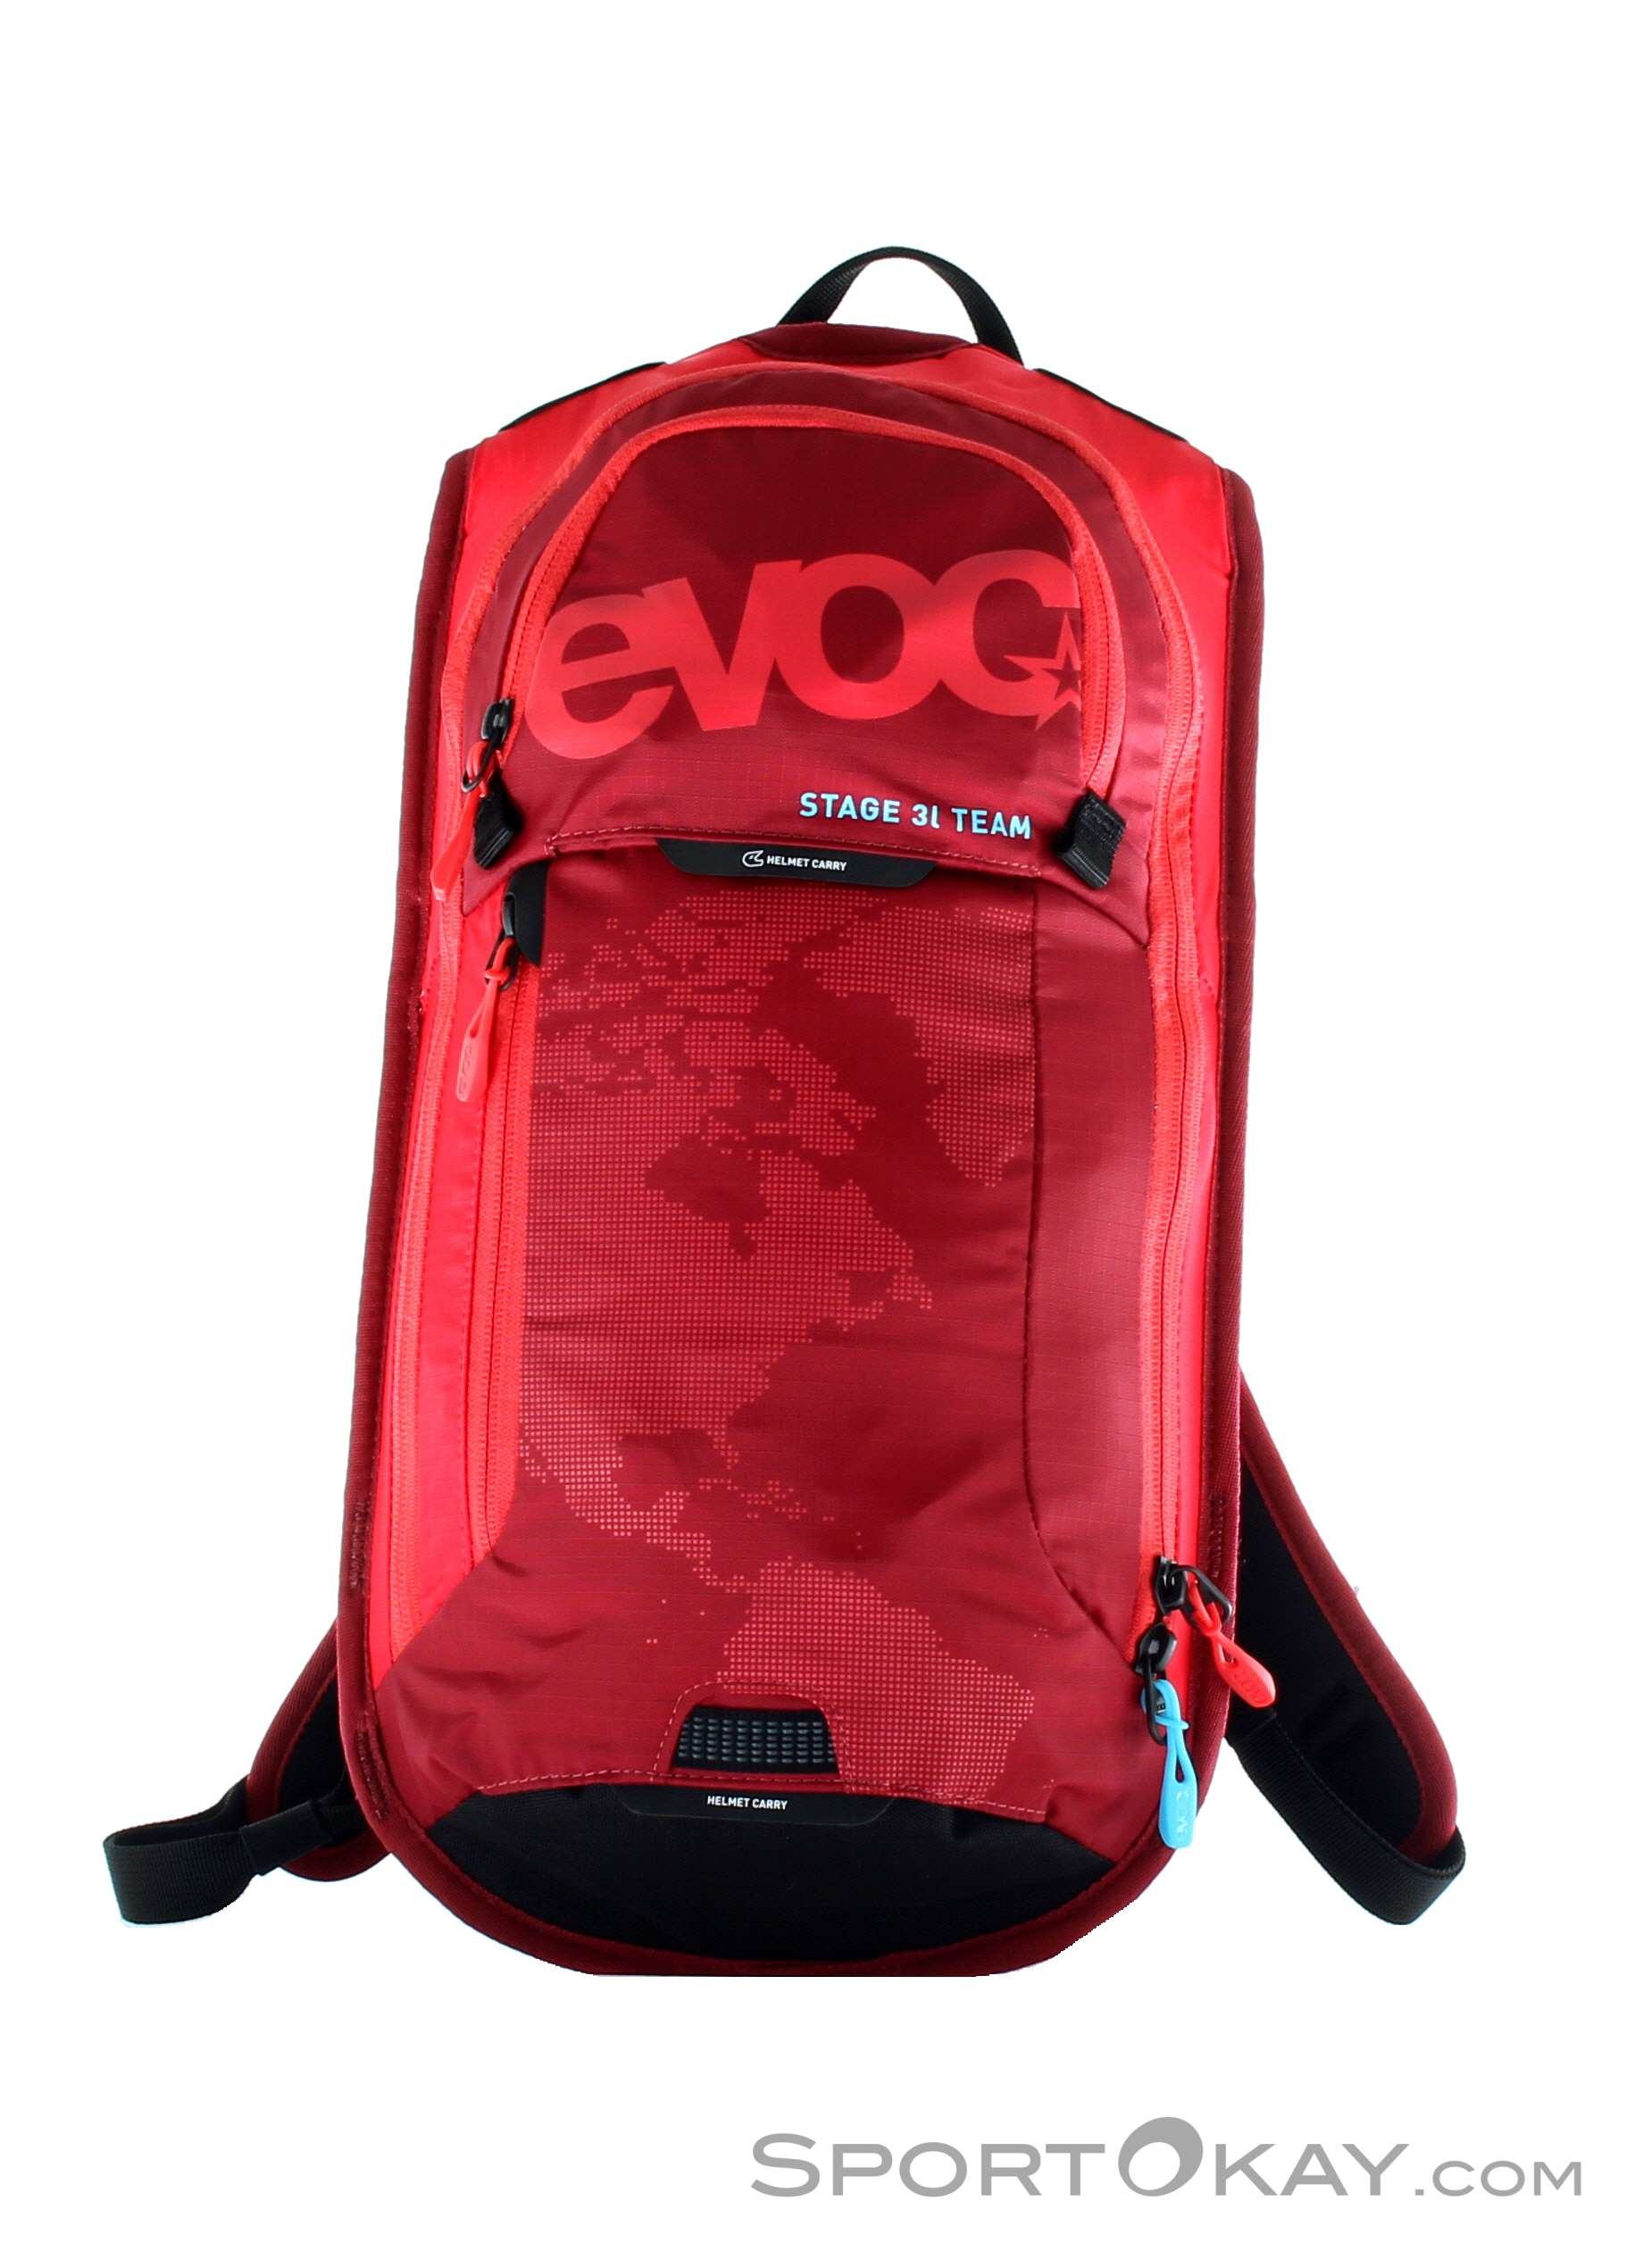 7e3d45c6c Evoc Stage Team 3l Bike Backpack with Hydration System, Evoc, Black, ,  Unisex